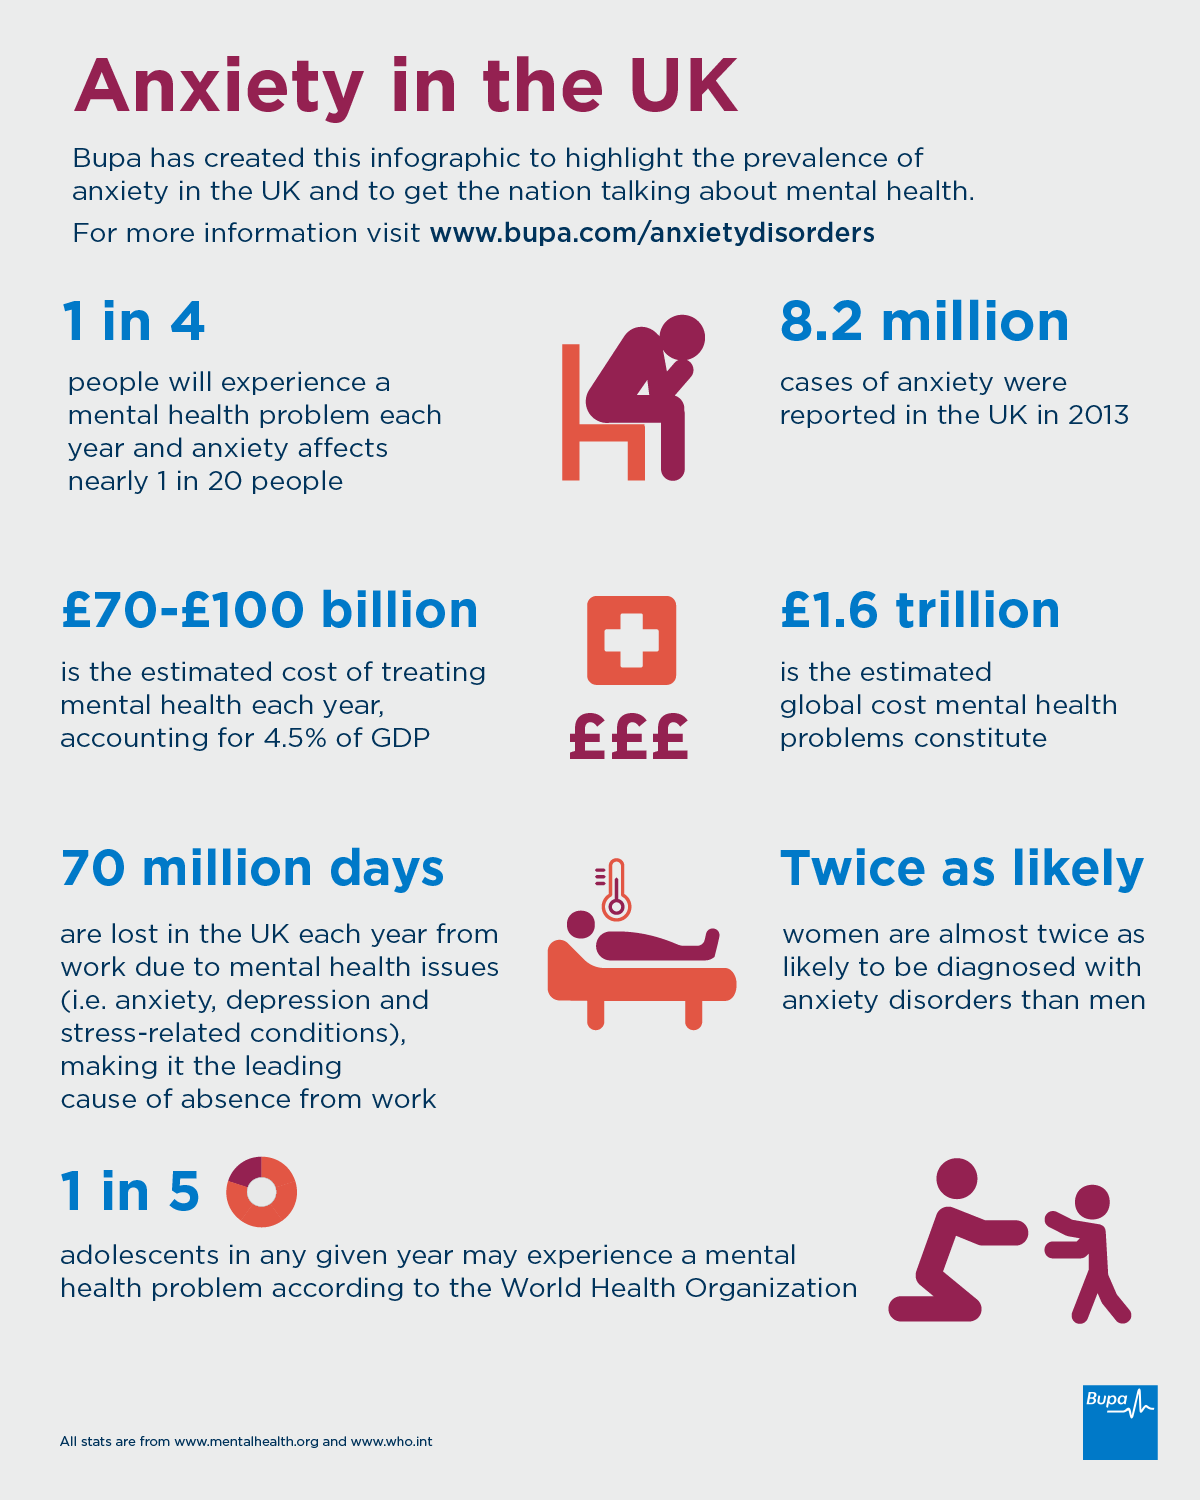 Anxiety in the UK infographic